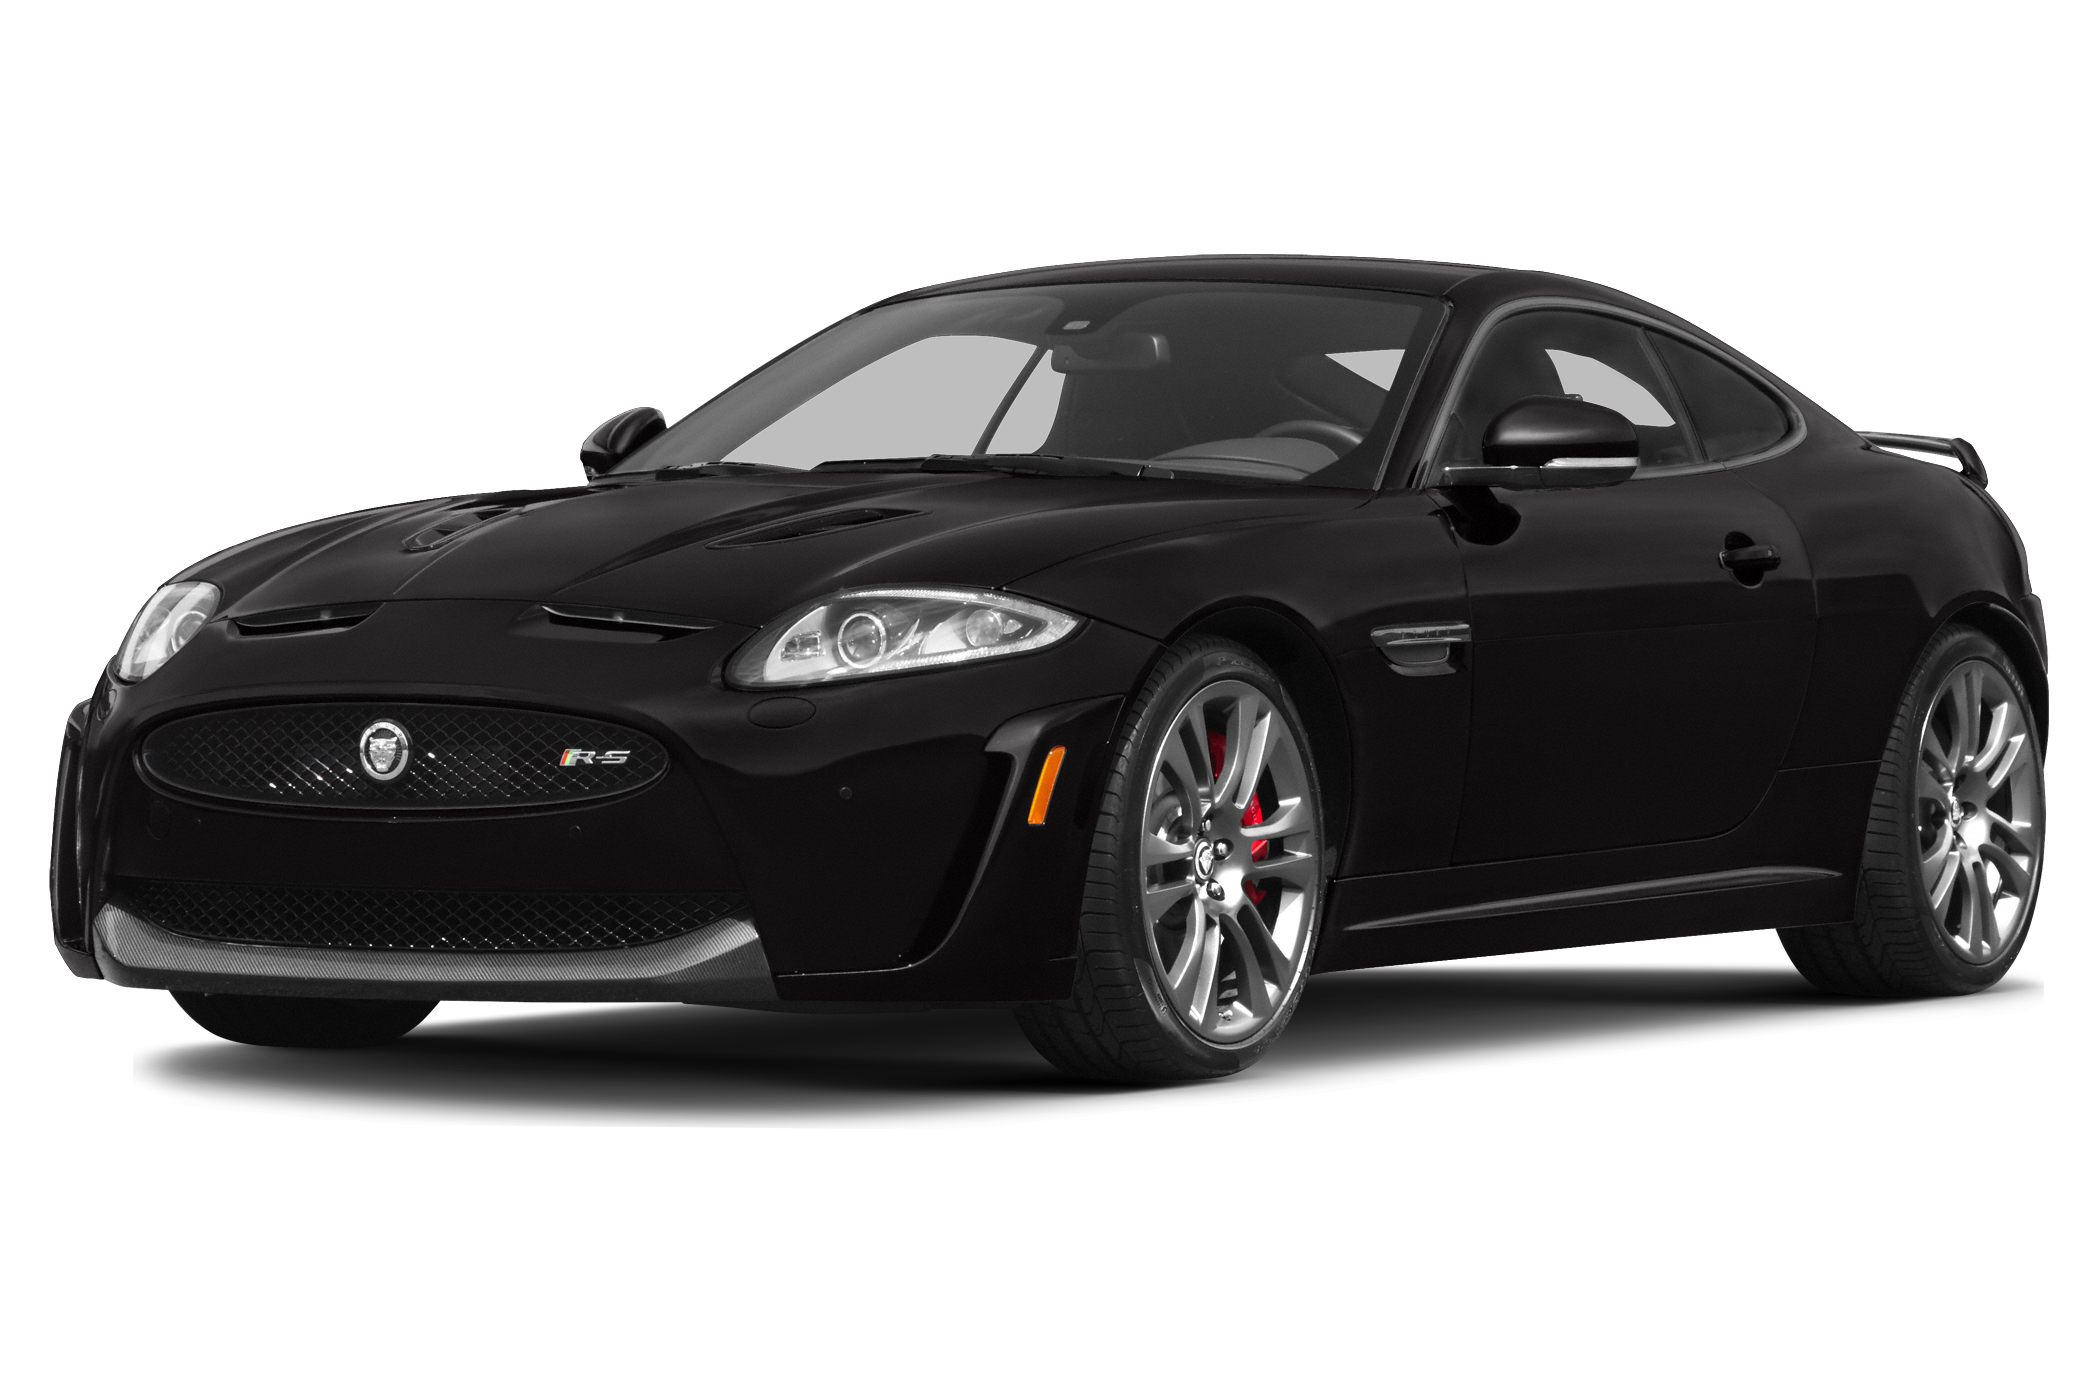 2013 Jaguar Xk Xkr S 2dr Coupe Pricing And Options